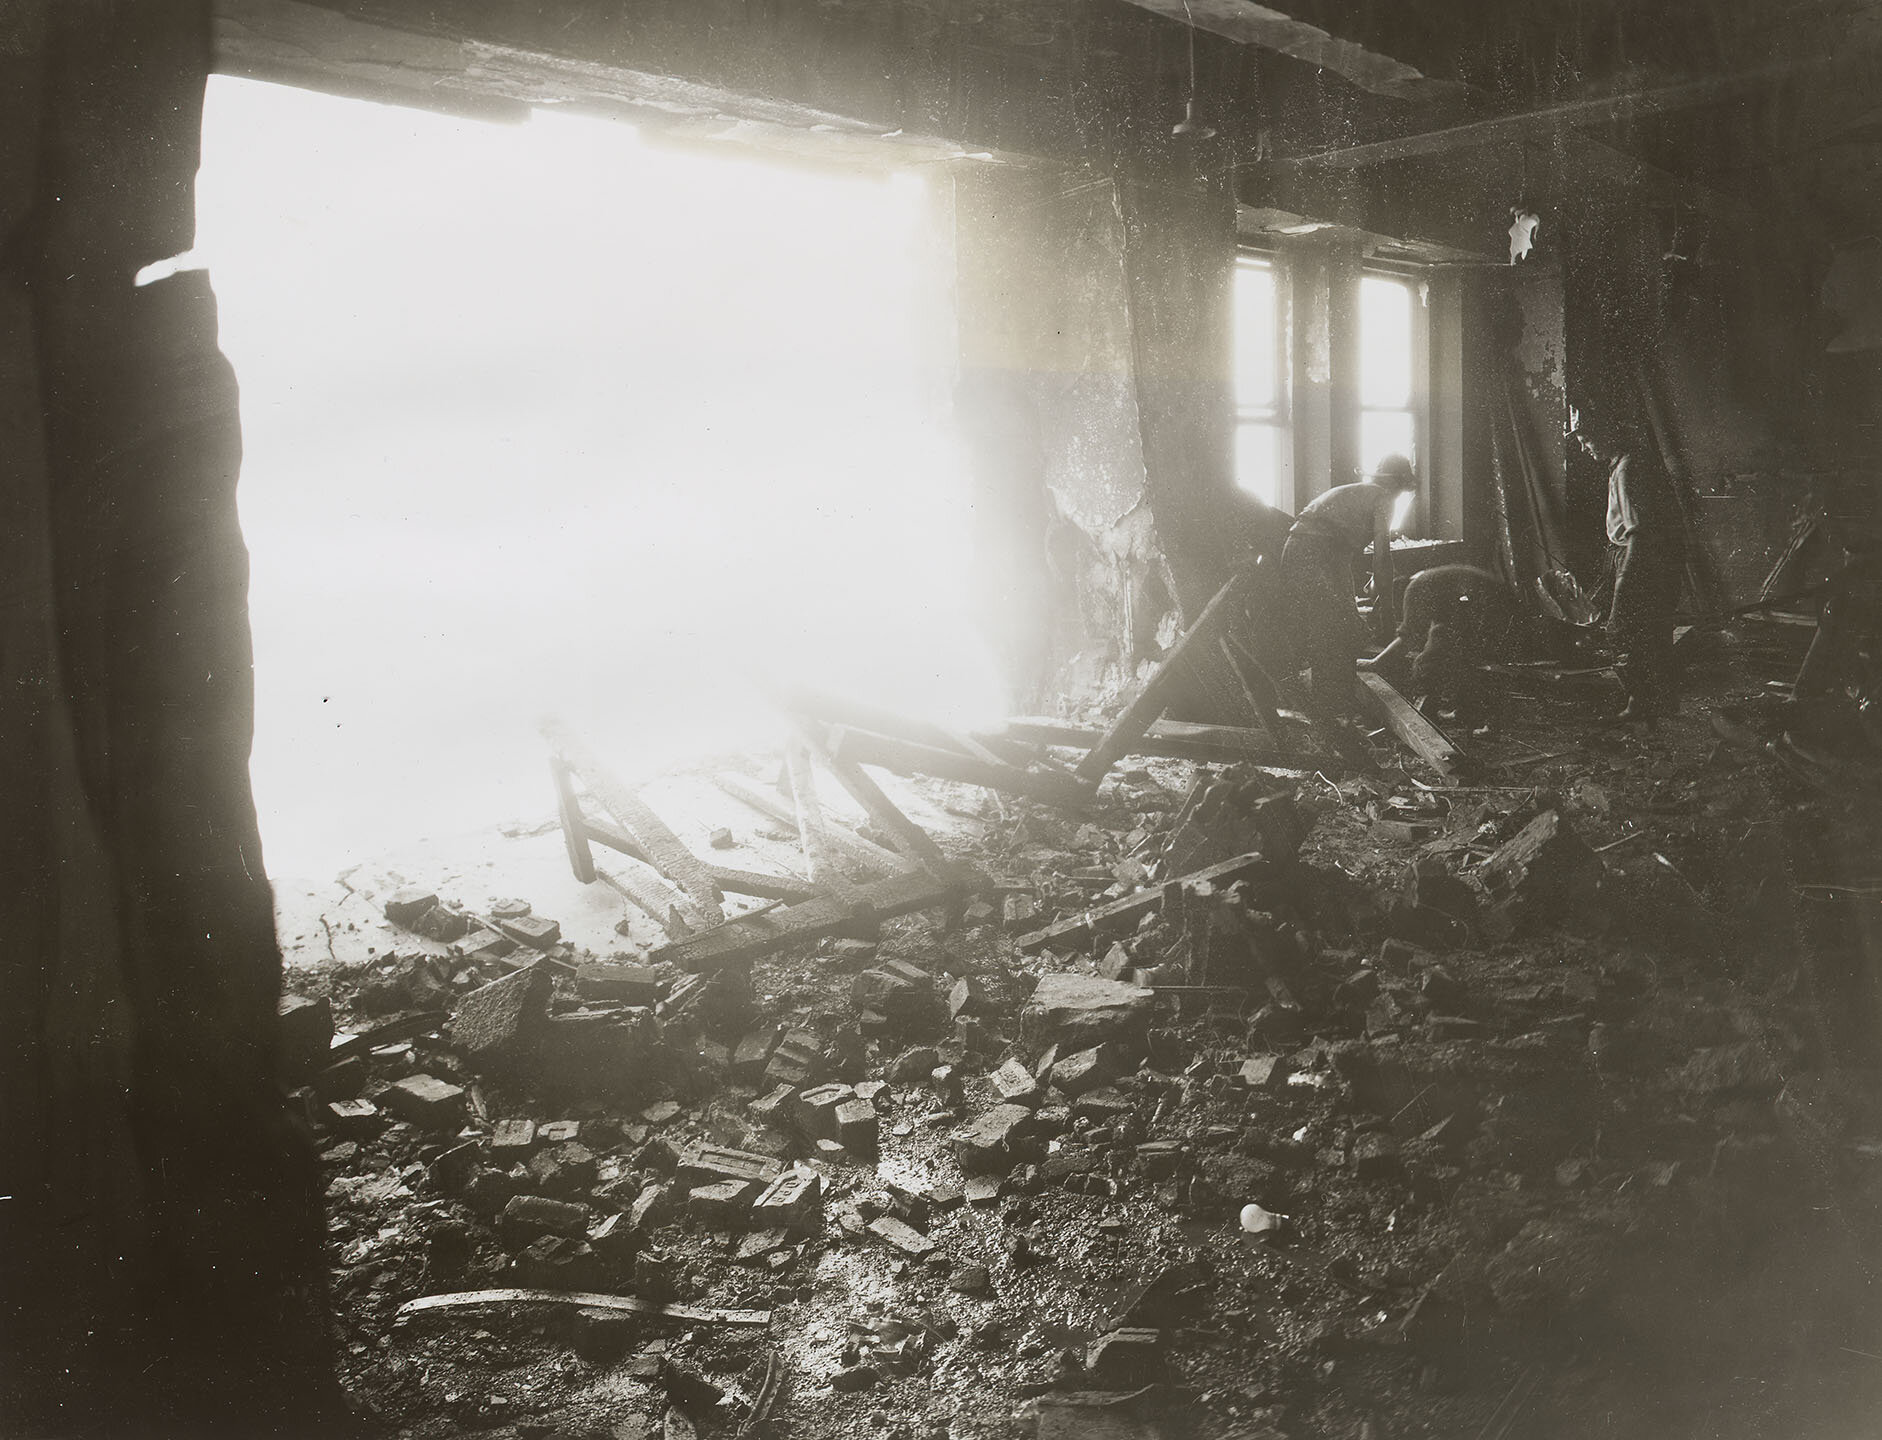 Empire State Building Disaster: Interior, 12:40 pm; 79th Floor, showing hole in wall where plane crashed, July 28, 1945. Mayor LaGuardia Collection, NYC Municipal Archives.